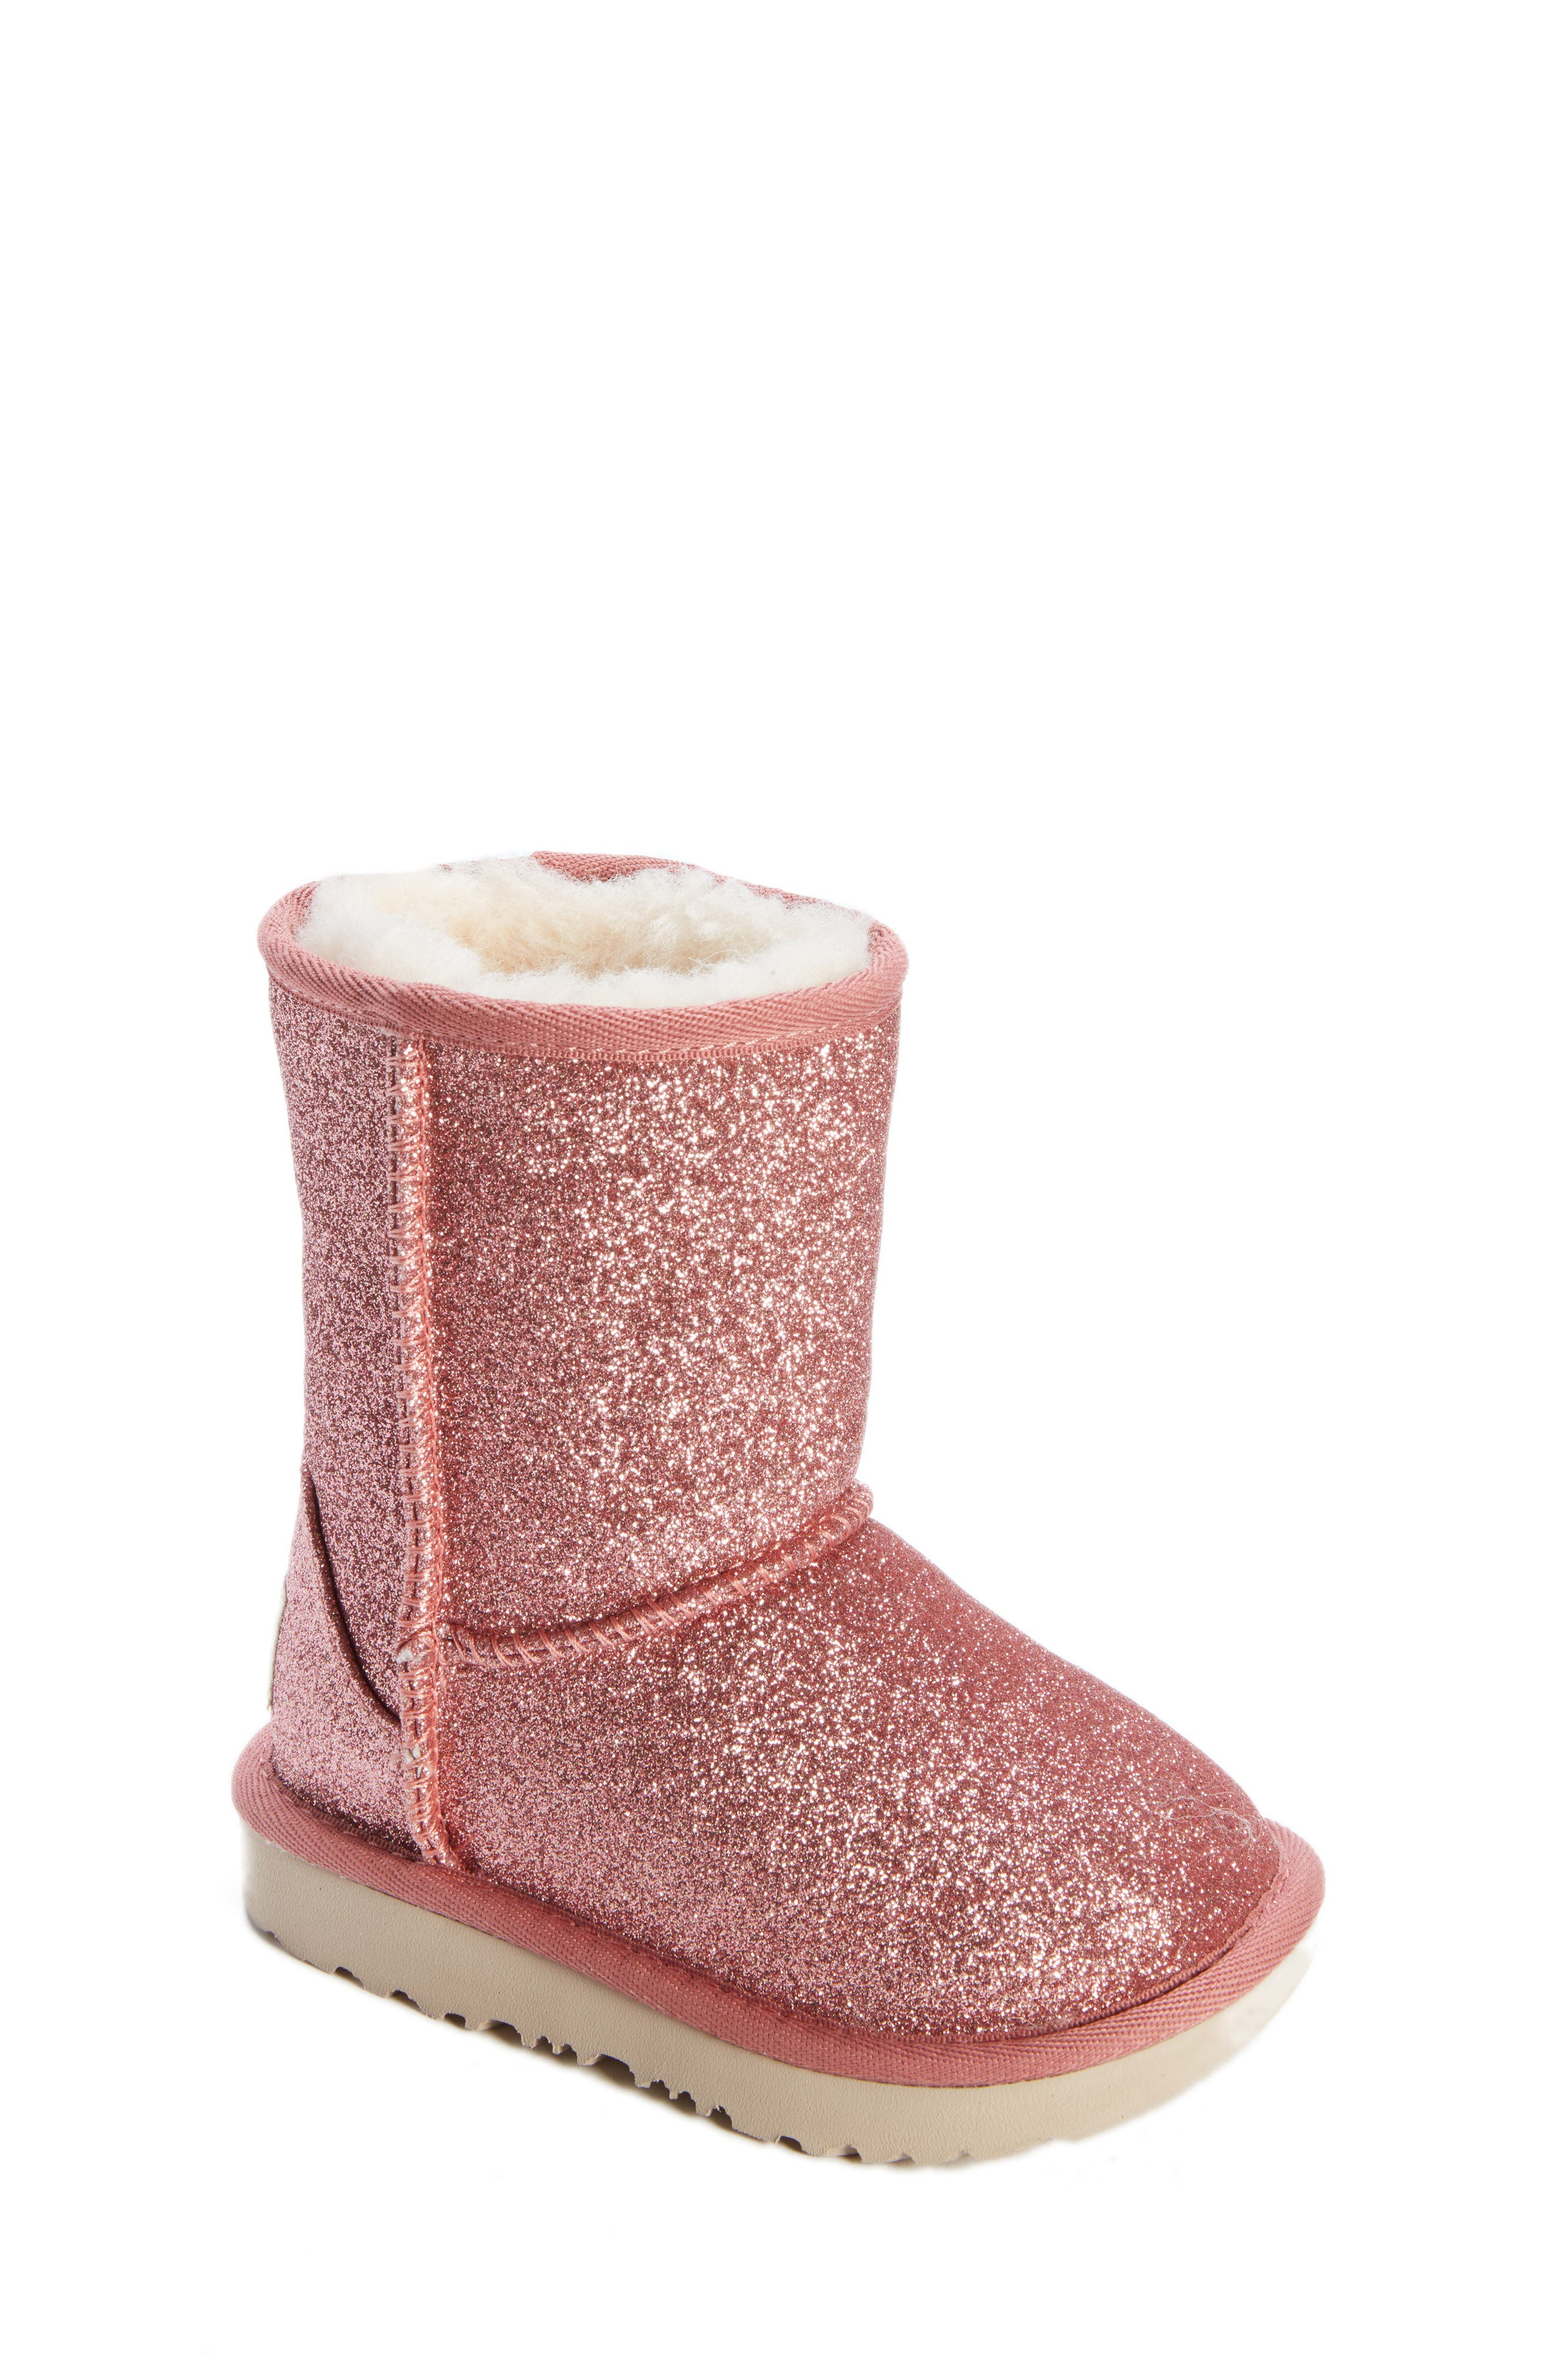 Classic Short II Glitter Bootie,                             Main thumbnail 1, color,                             PINK